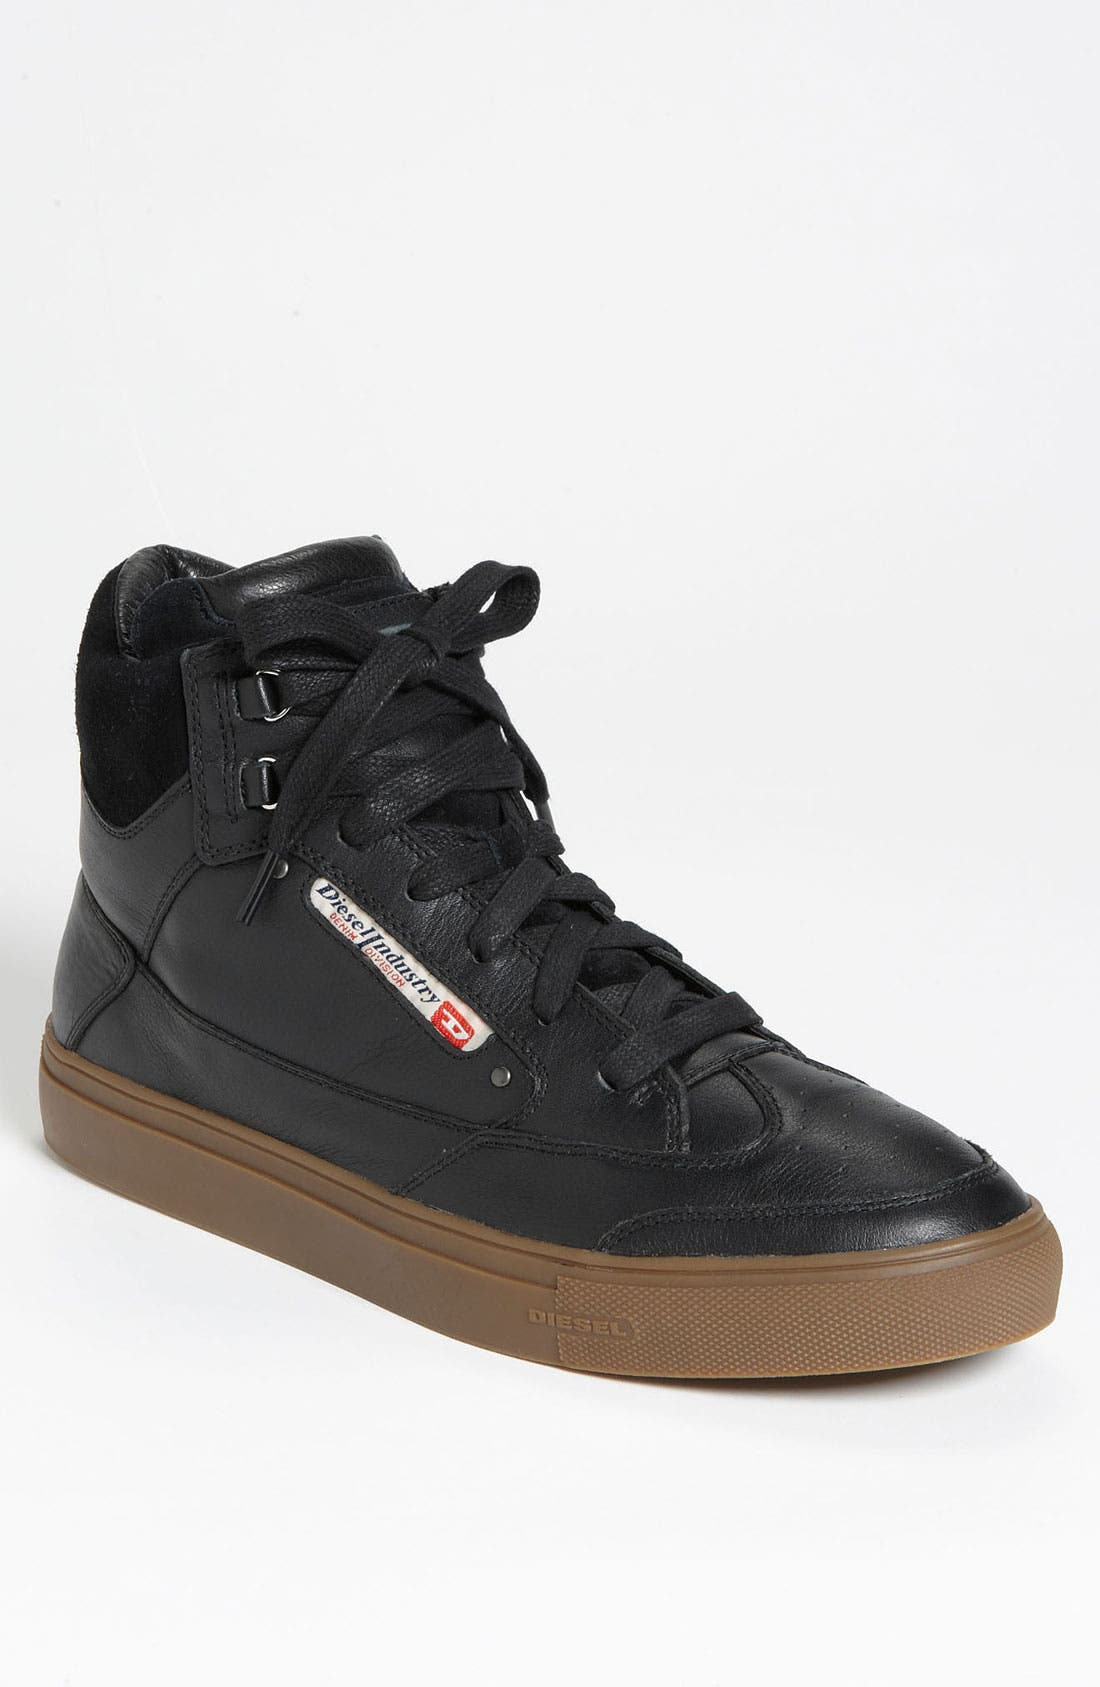 Alternate Image 1 Selected - DIESEL® 'Revolution - Claw King' Sneaker (Men)